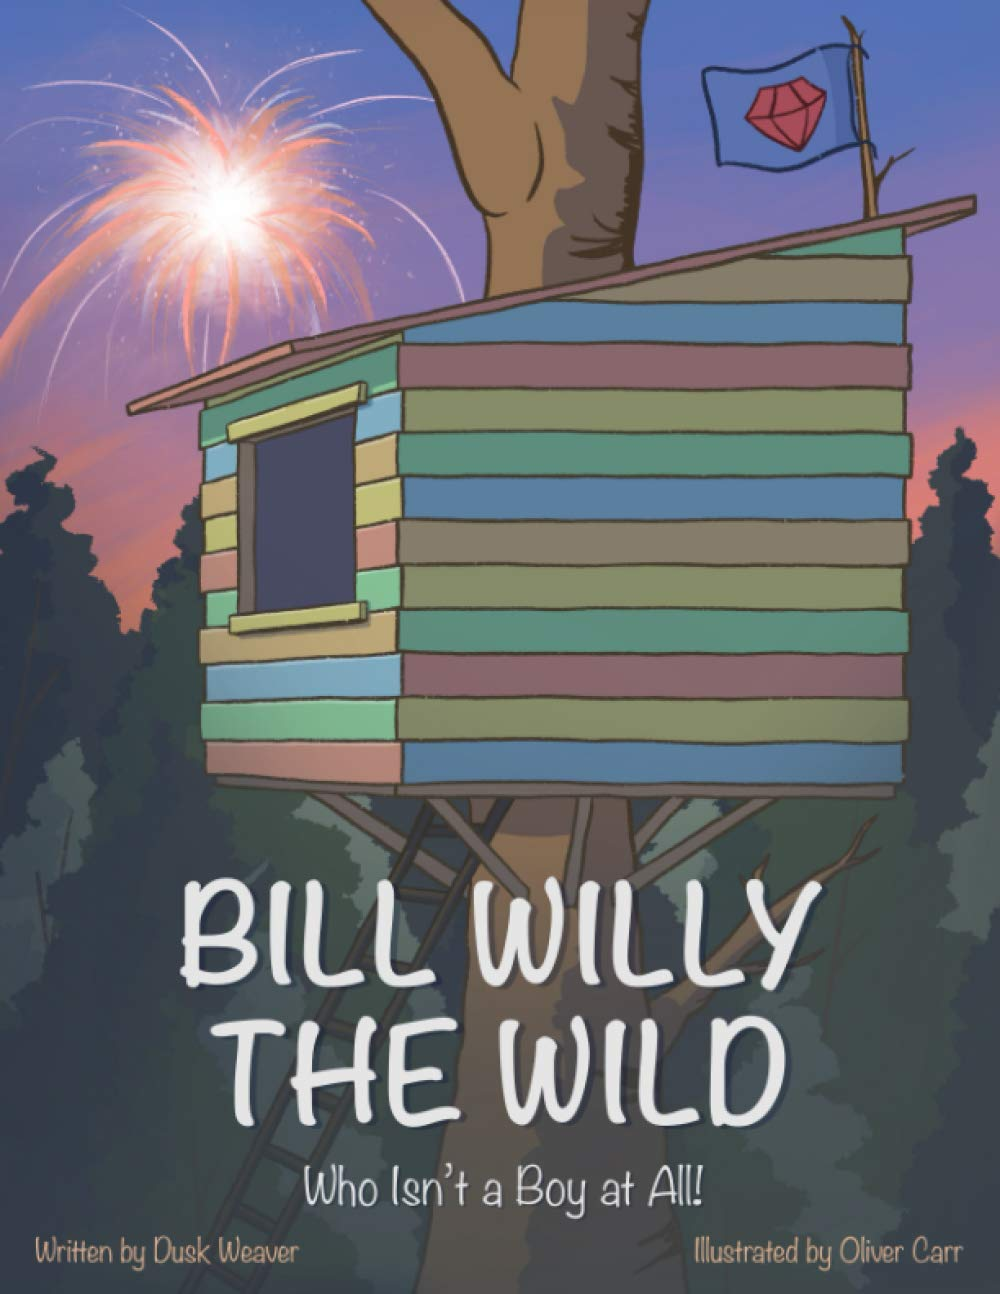 Bill Willy the Wild